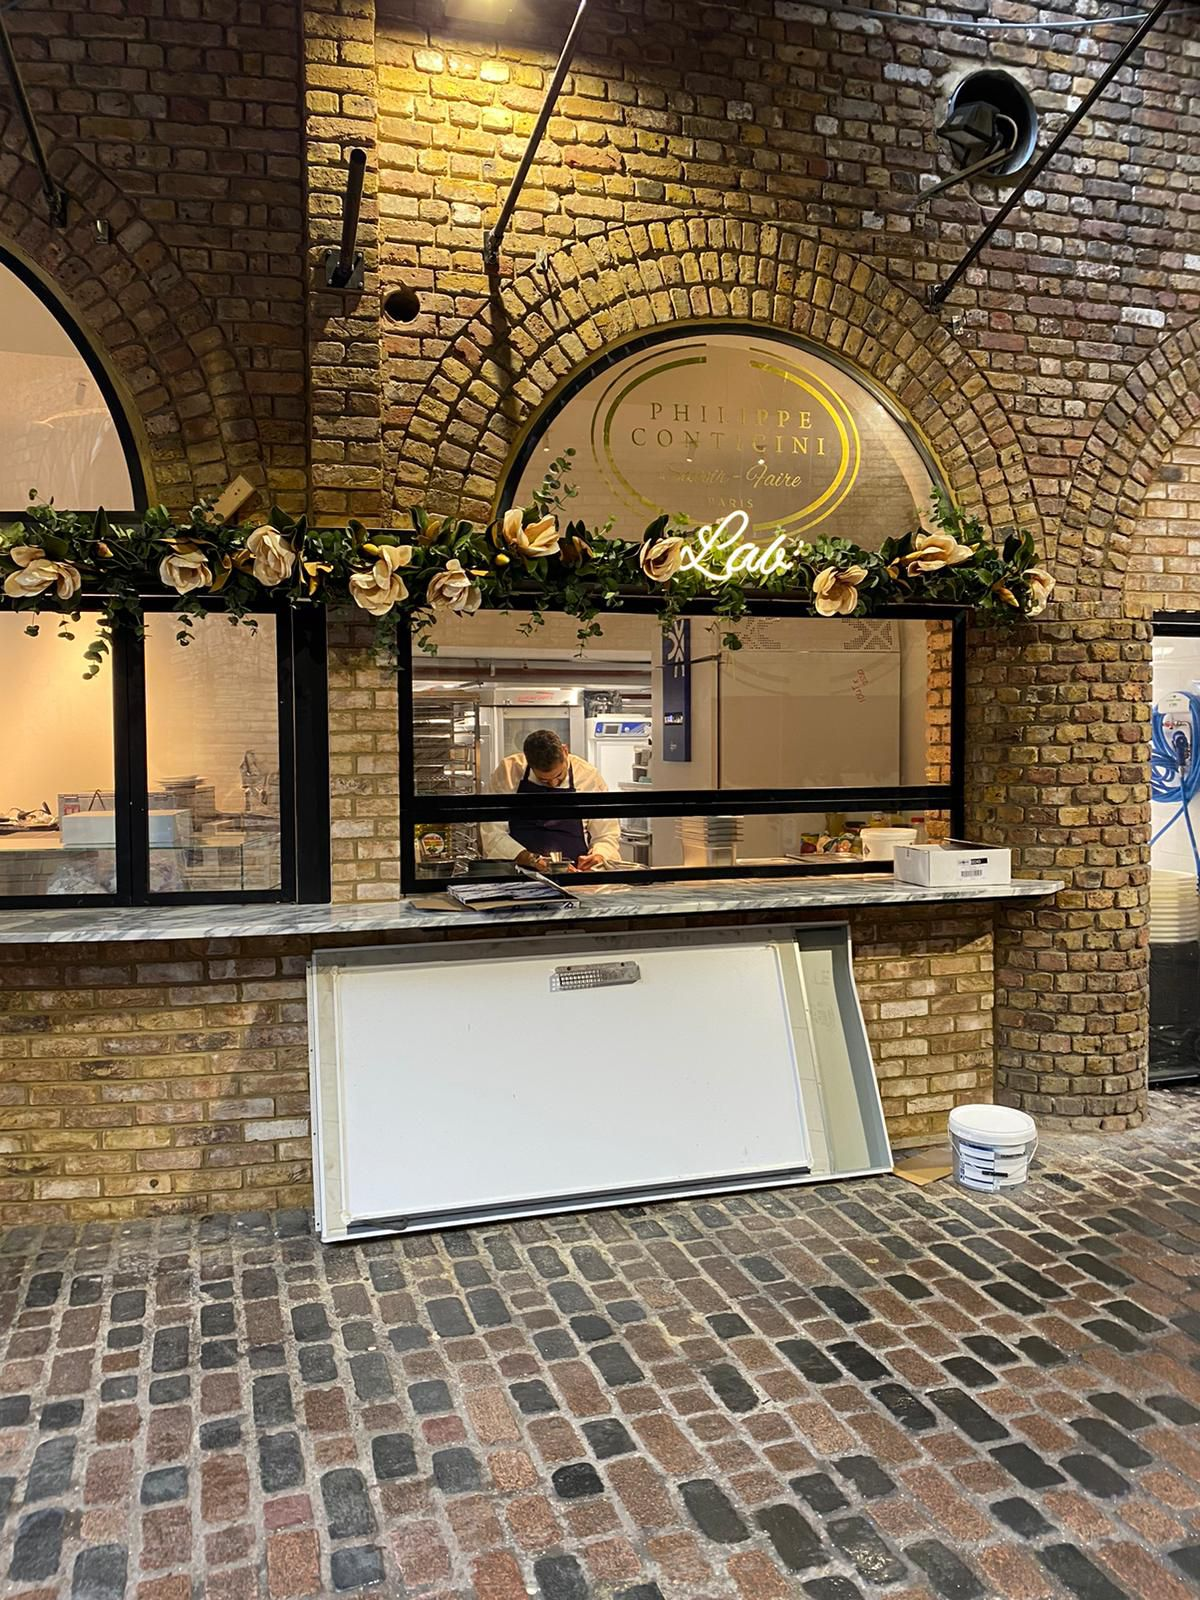 An exterior shot of Philippe Conticini pastry store in London's Camden Market